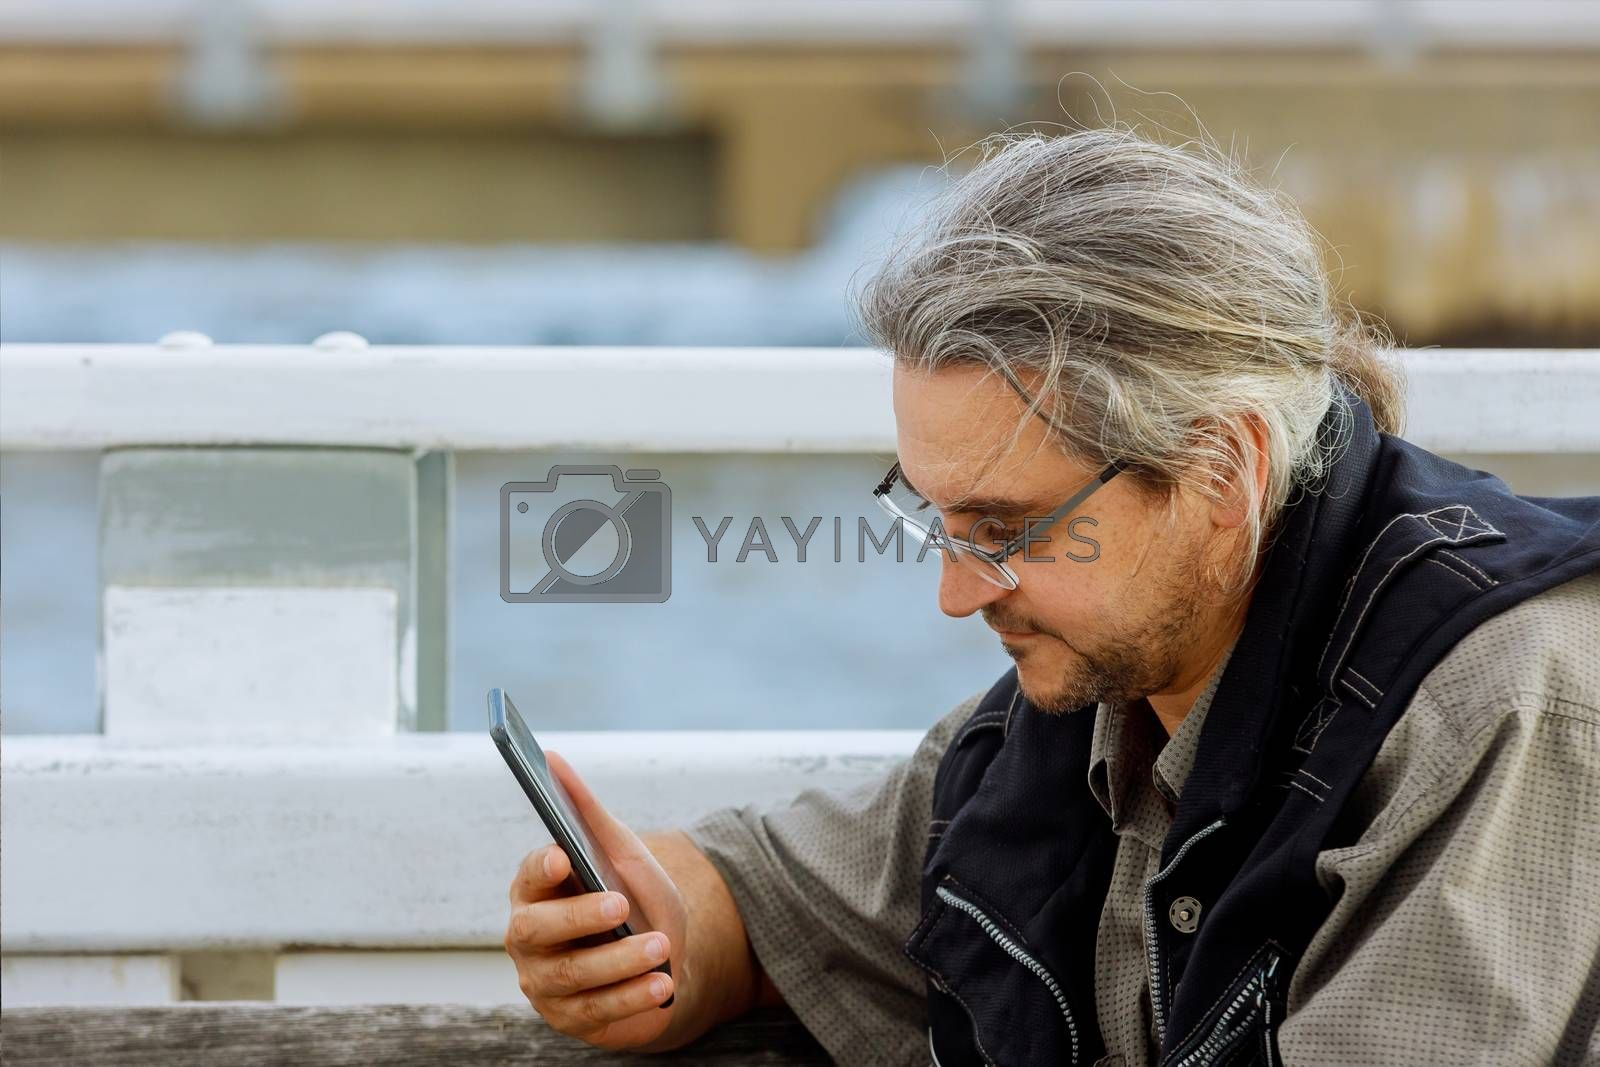 Technology, communication man with smartphone on street against of the bay